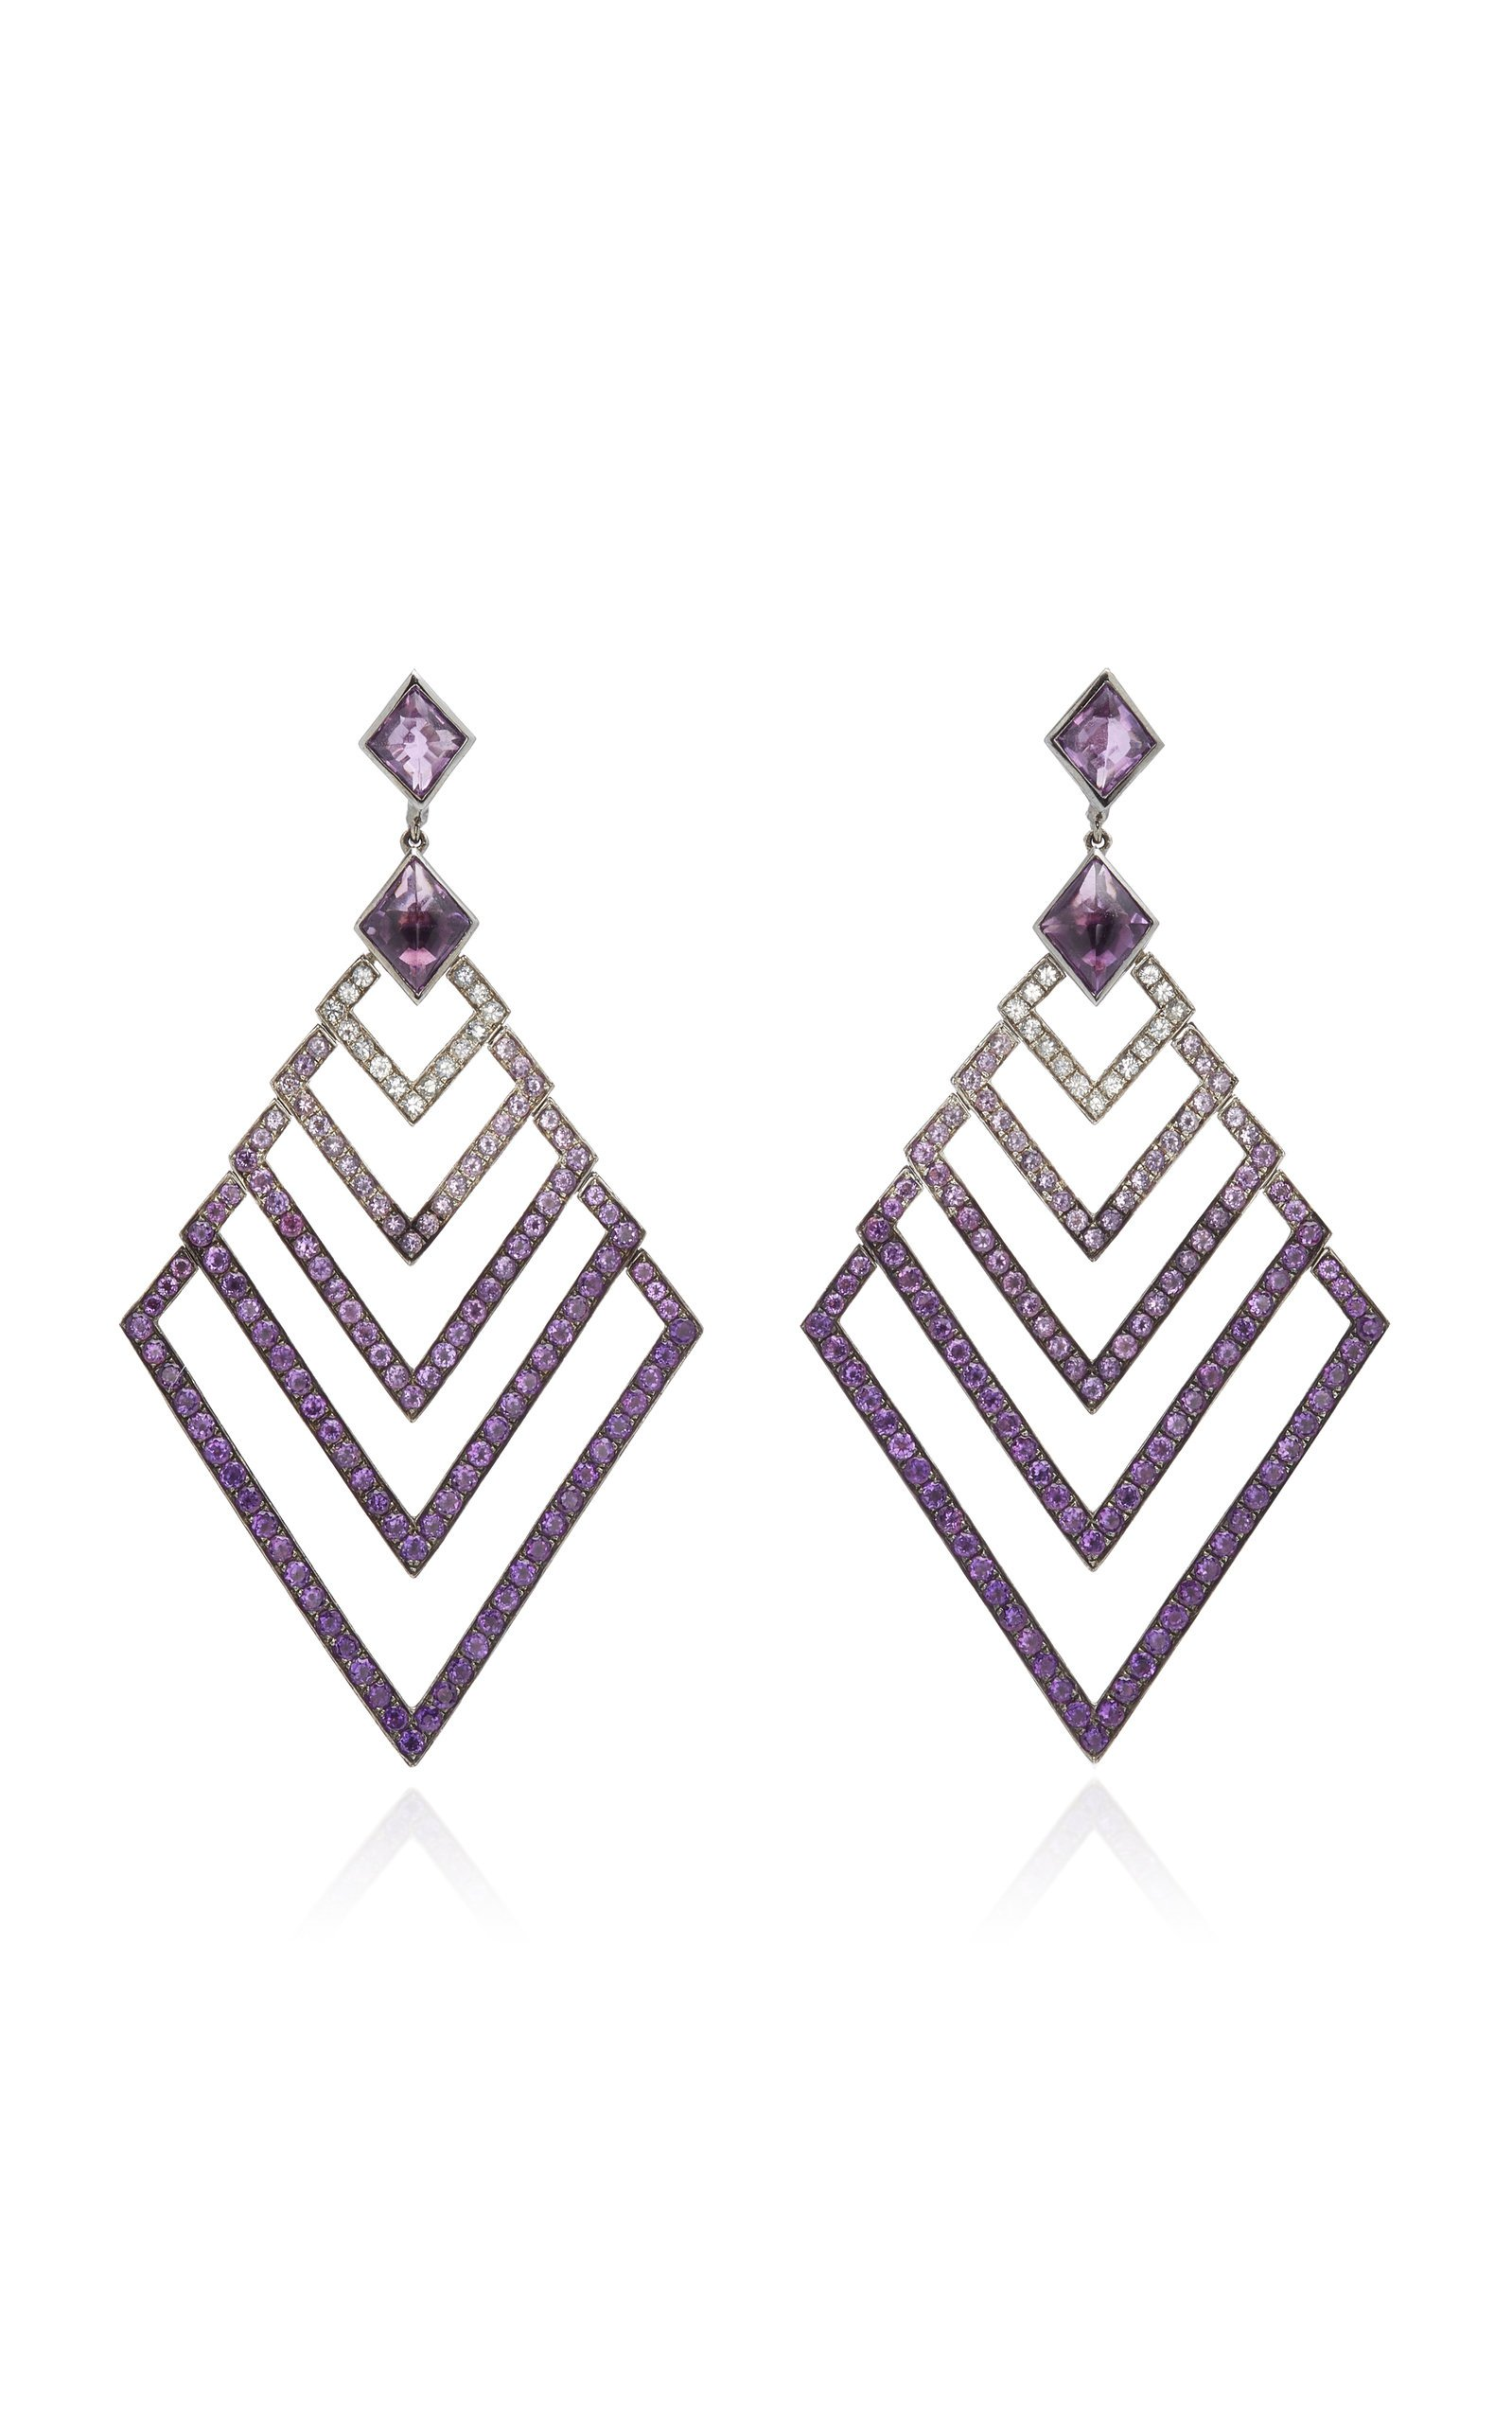 Black Rhodium-Plated Silver, Amethyst And Sapphire Earrings by Lynn Ban Jewelry | Moda Operandi